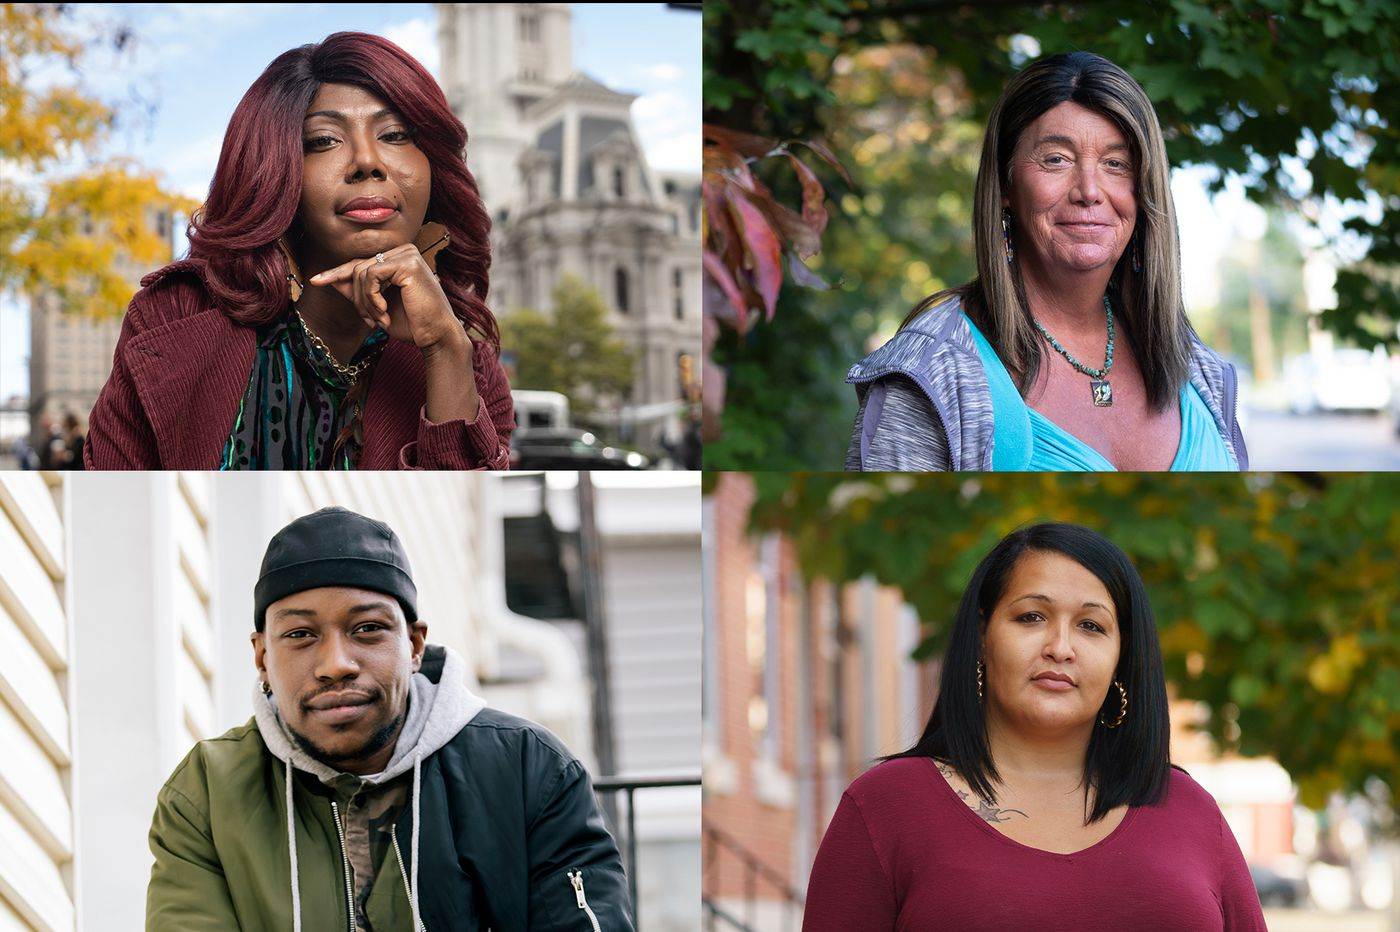 How to support trans people in Philly, according to trans people